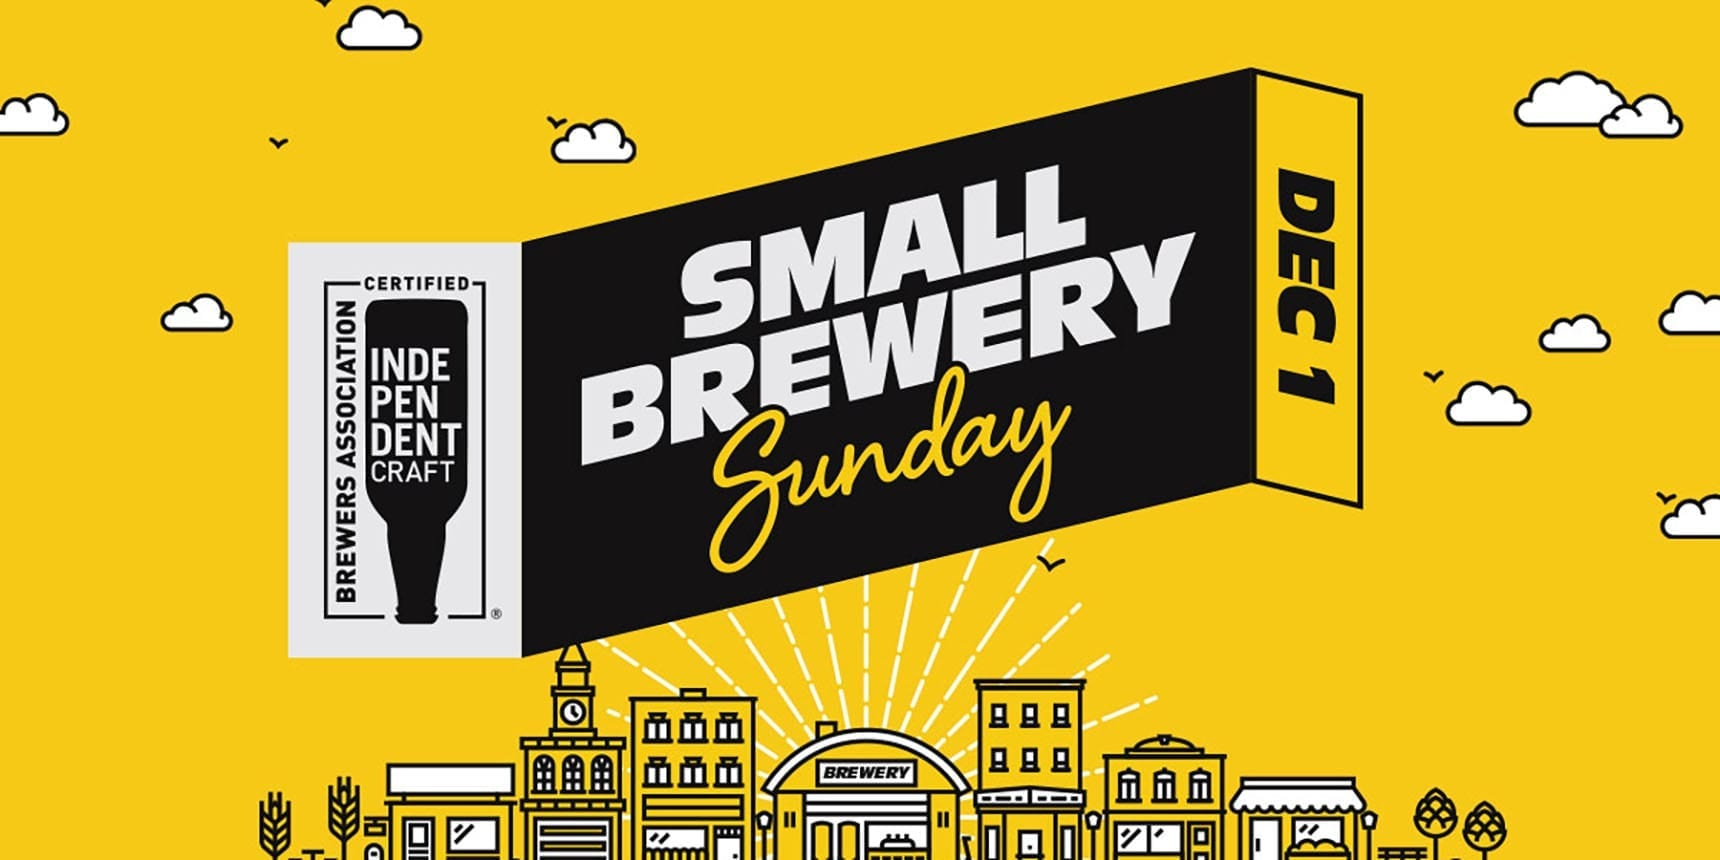 Small Brewery Sunday 2019 - Featured